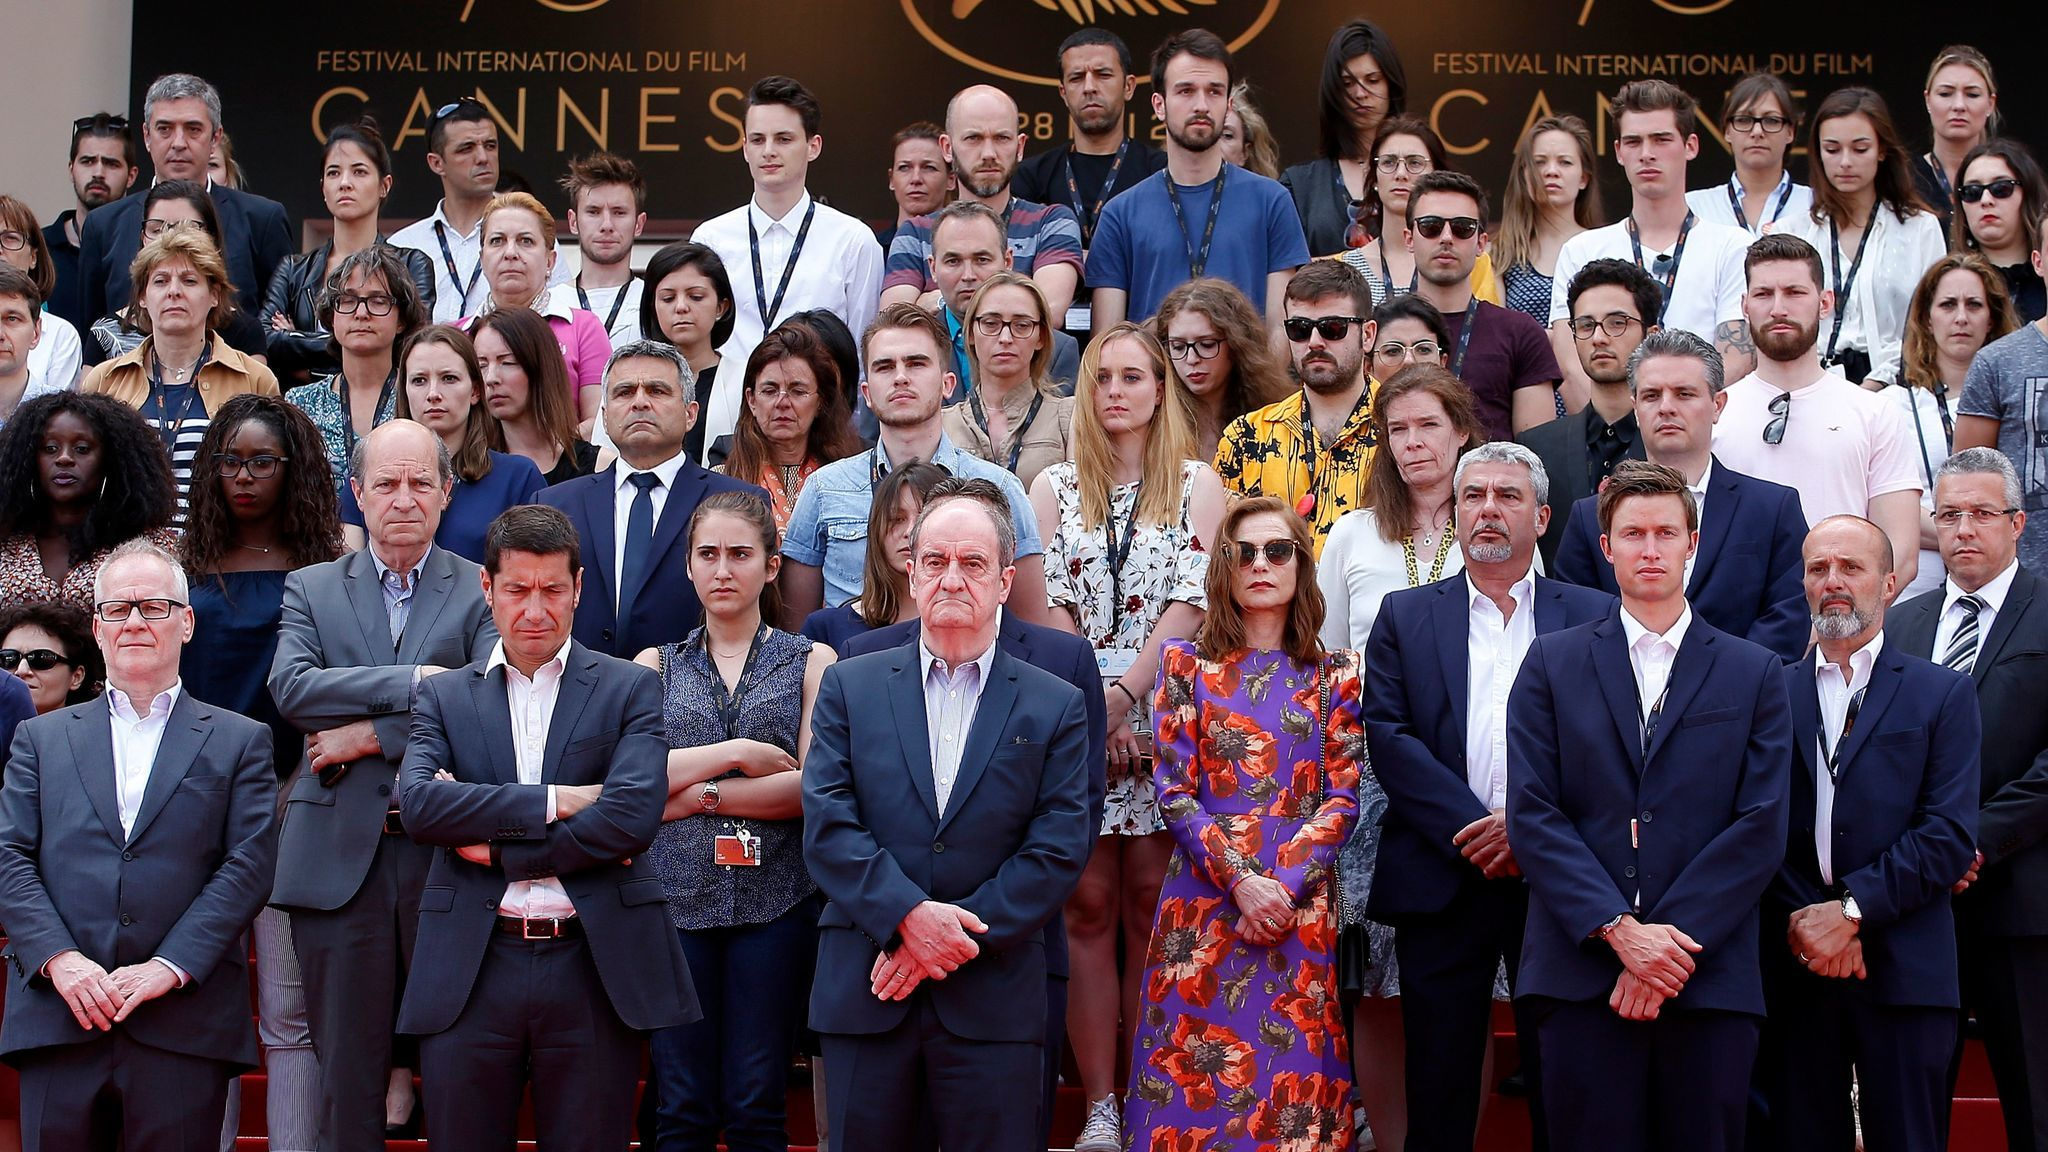 (Front L-R) General Delegate of the Cannes Film Festival Thierry Fremaux, Mayor of Cannes David Lisn